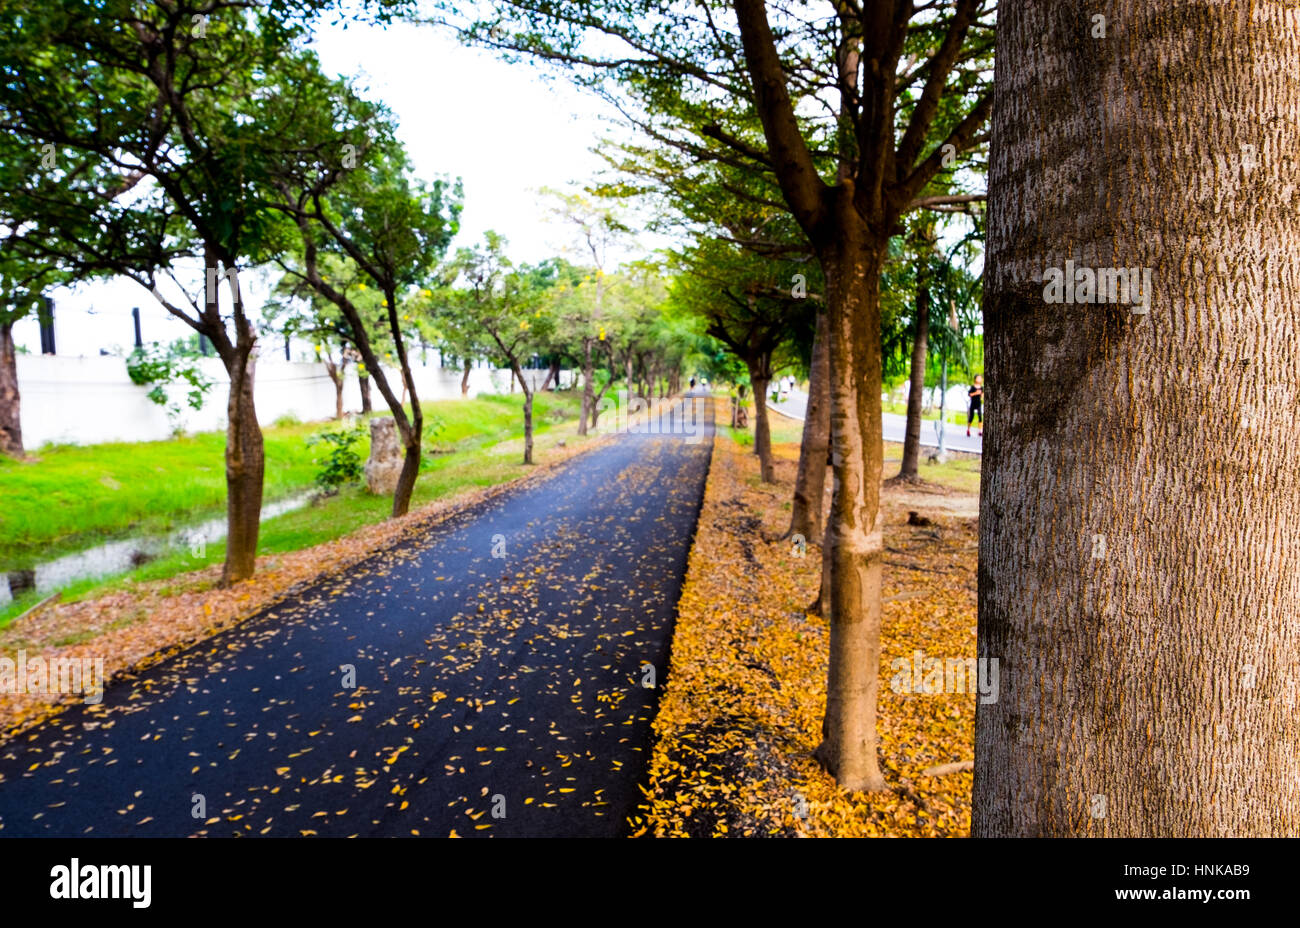 Asphalt running and bicycle lane in city park, autumn season, front focus blurred background - Stock Image